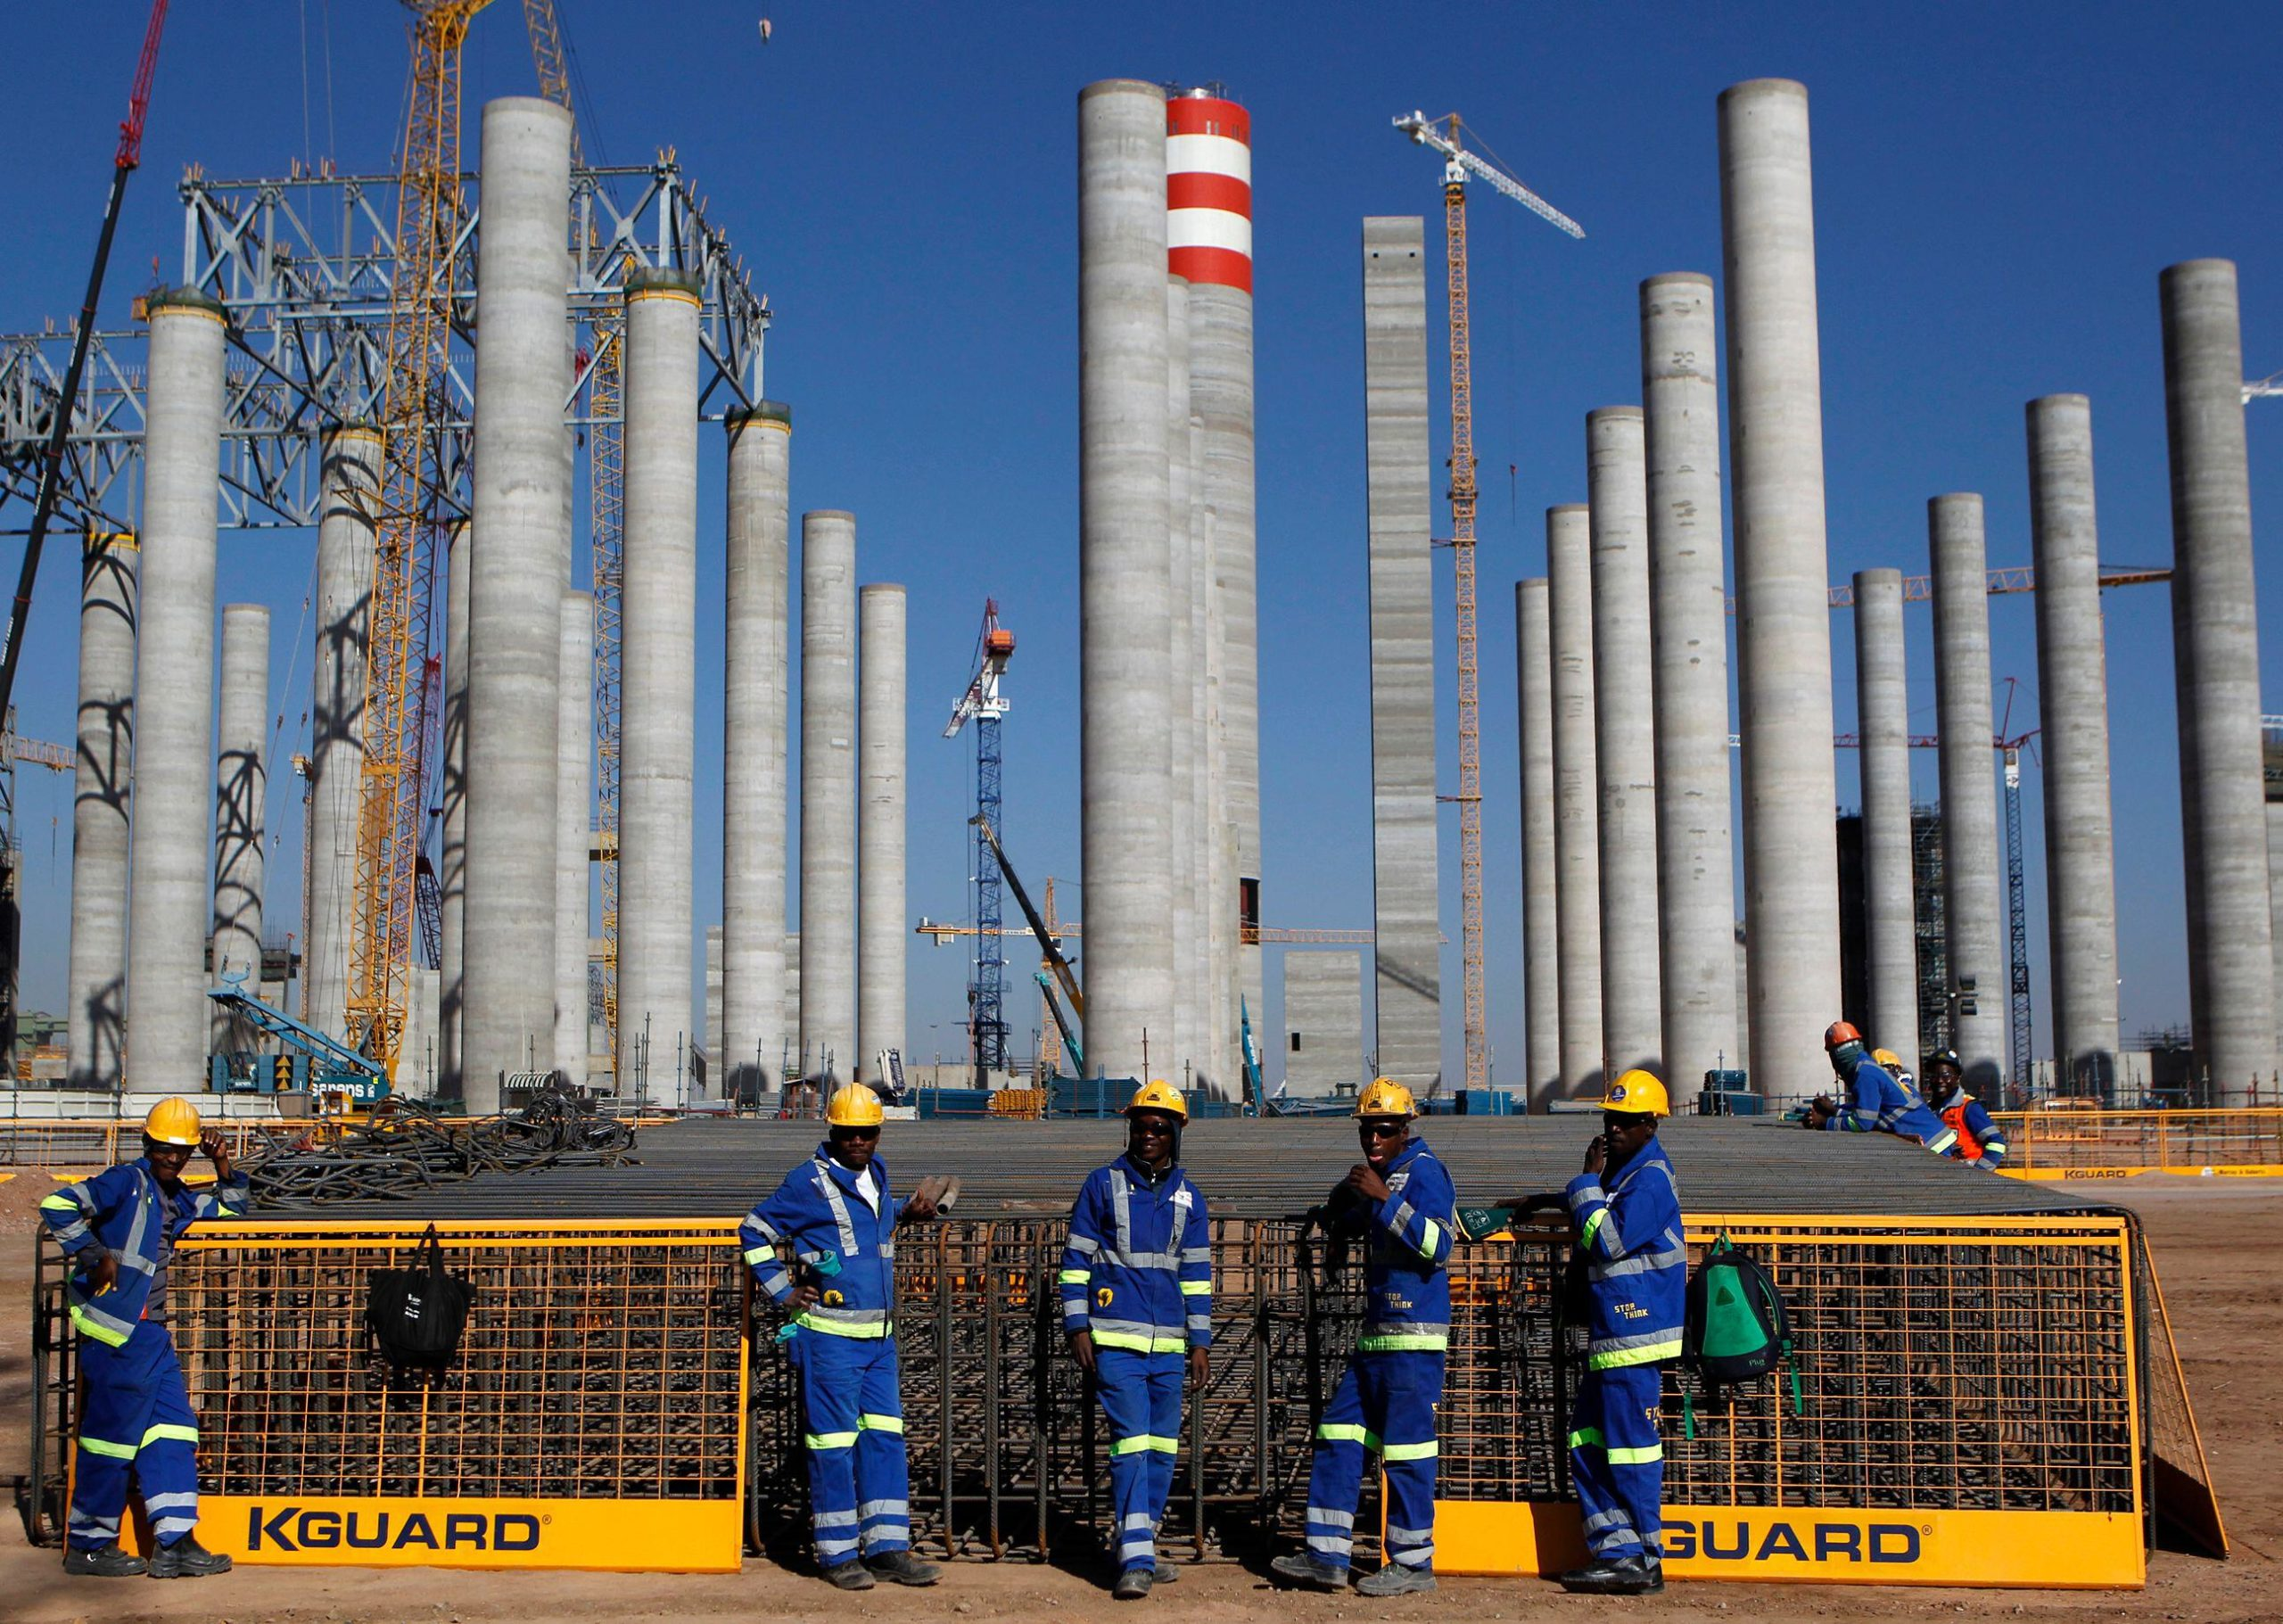 South Africa's budding carbon emitter